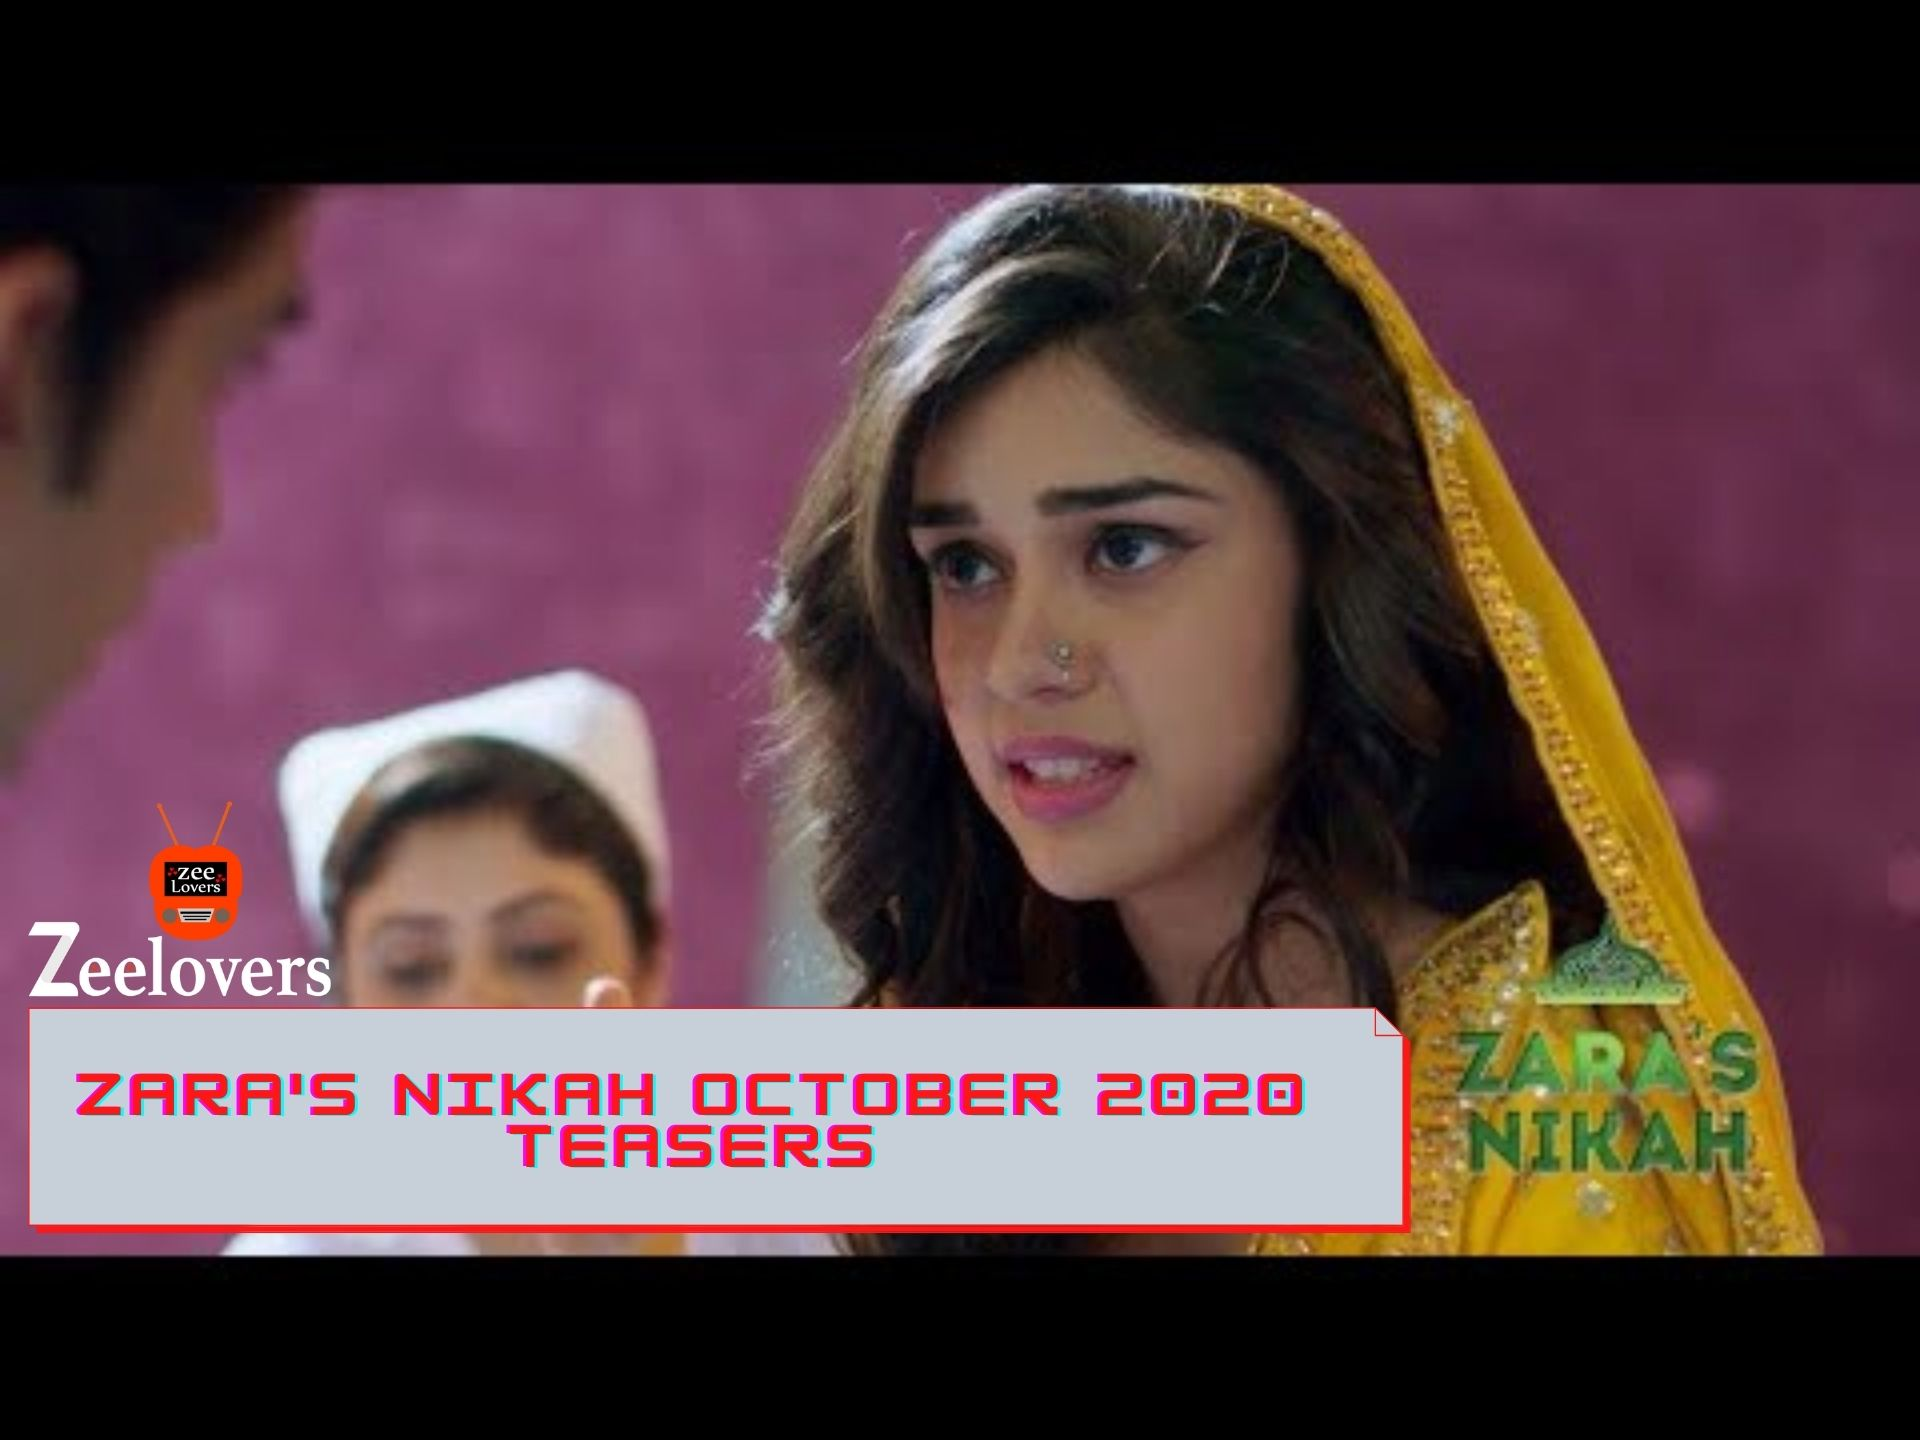 Zara's Nikah October 2020 Teasers